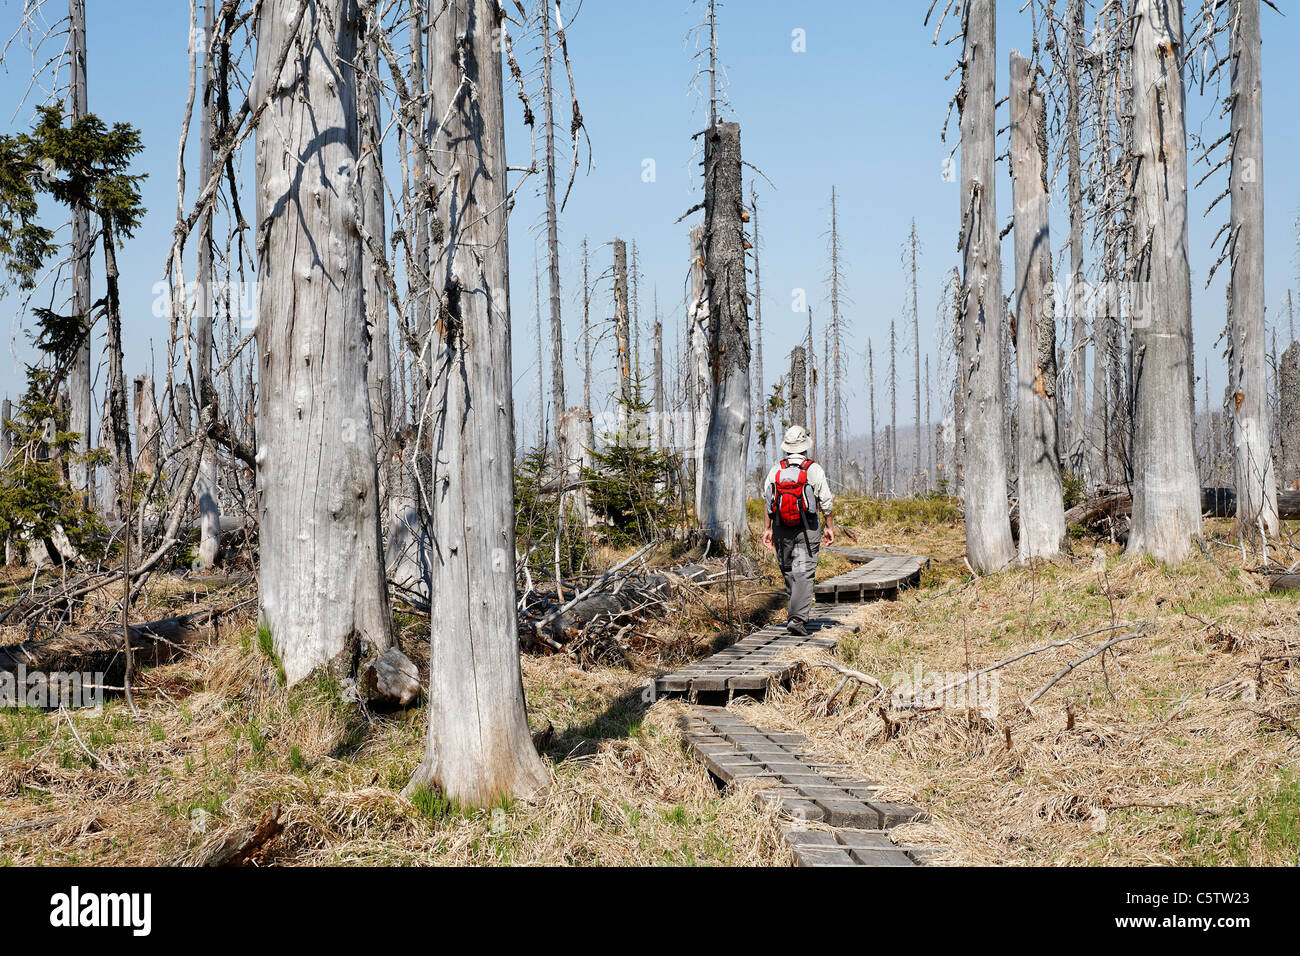 Germany, Bavaria, Lower Bavaria, Forest with dead spruces at bavarian forest, person walking on path - Stock Image